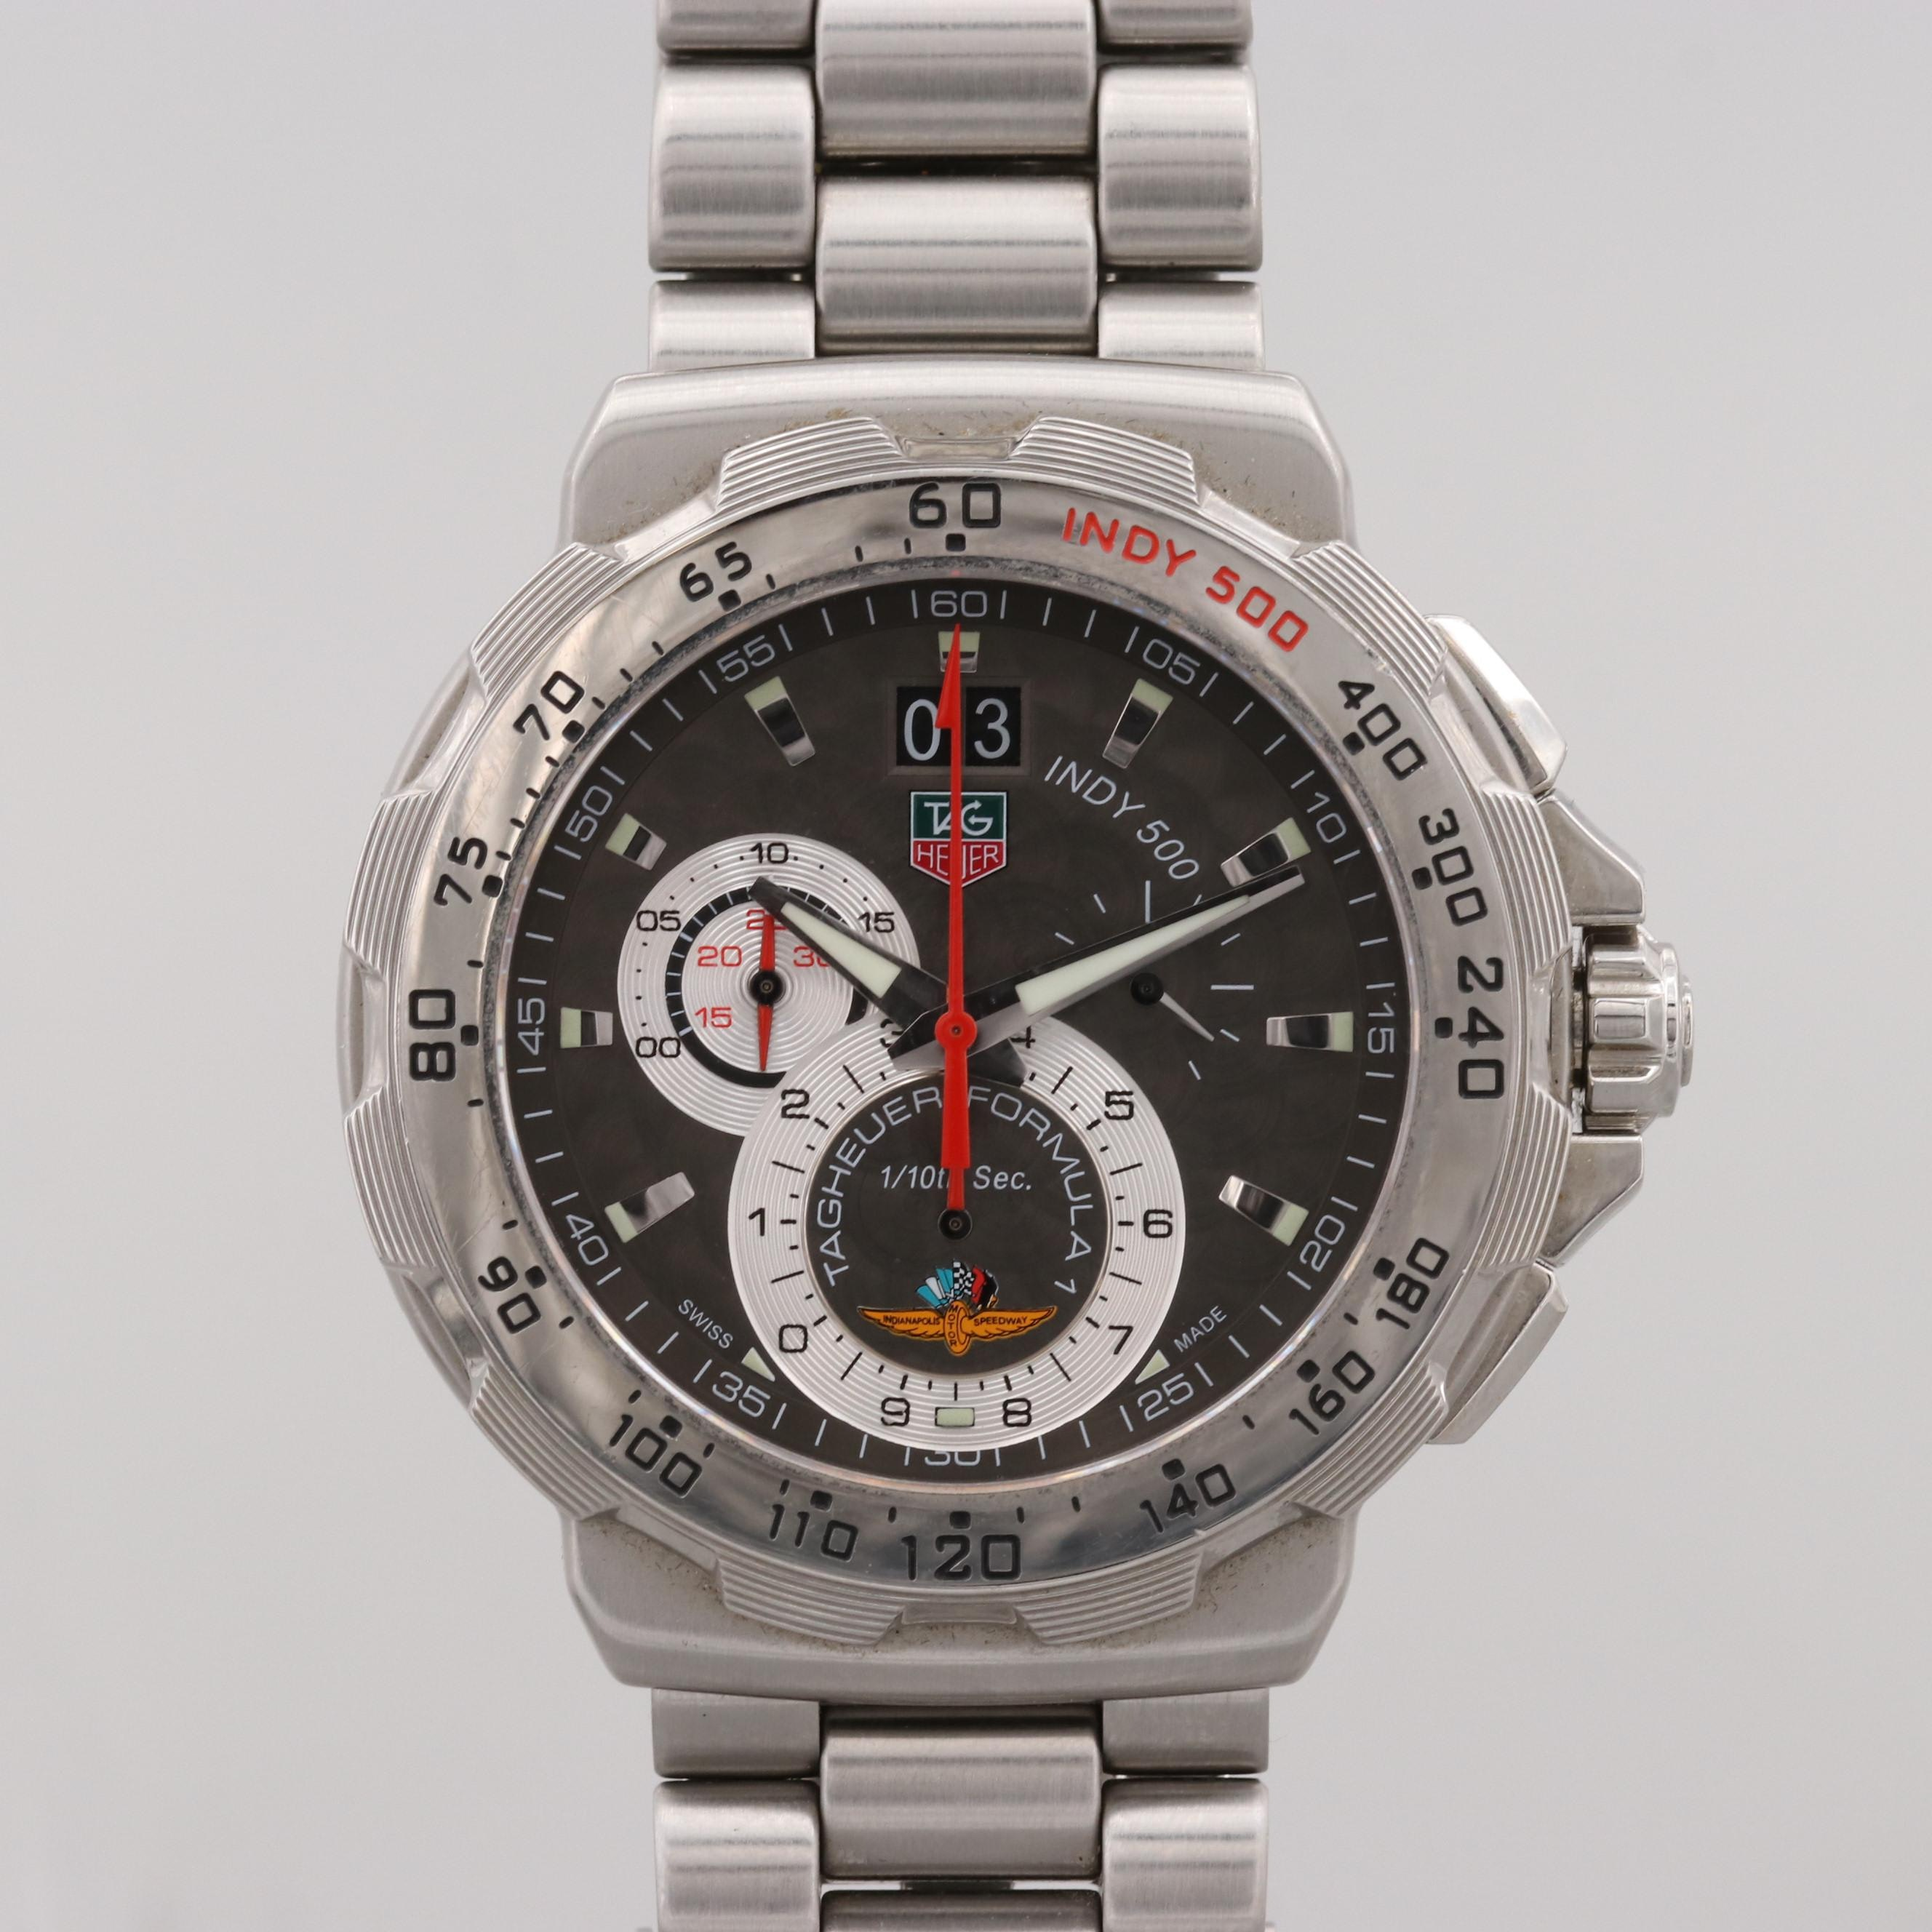 TAG Heuer Indy 500 Stainless Steel Grande Date Chronograph Wristwatch